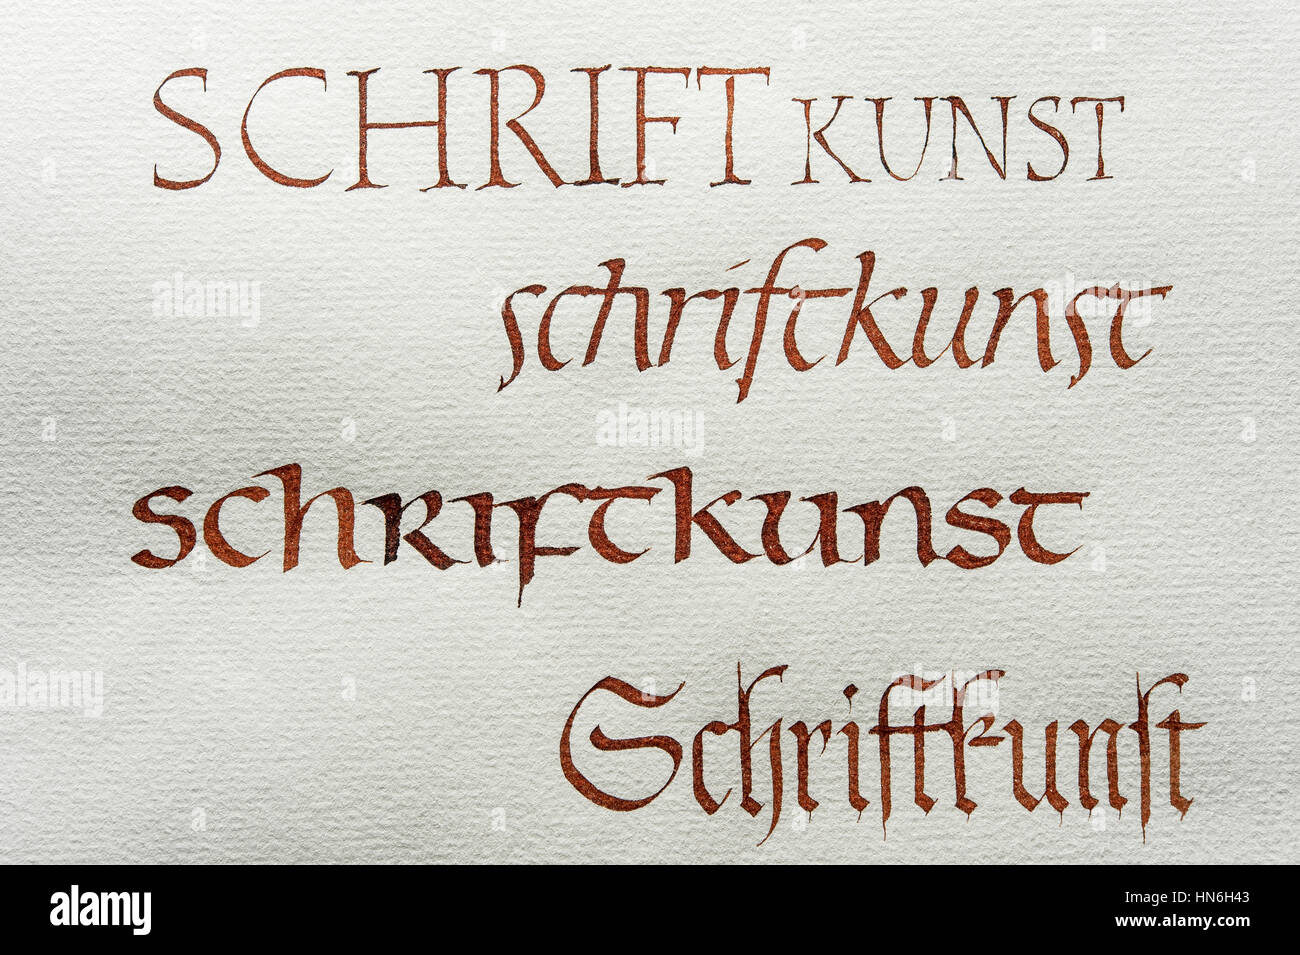 Calligraphy Studio Fonts Roman Capital Font Italics Insular Minuscule Gothic Script On Ingres Paper Seebruck